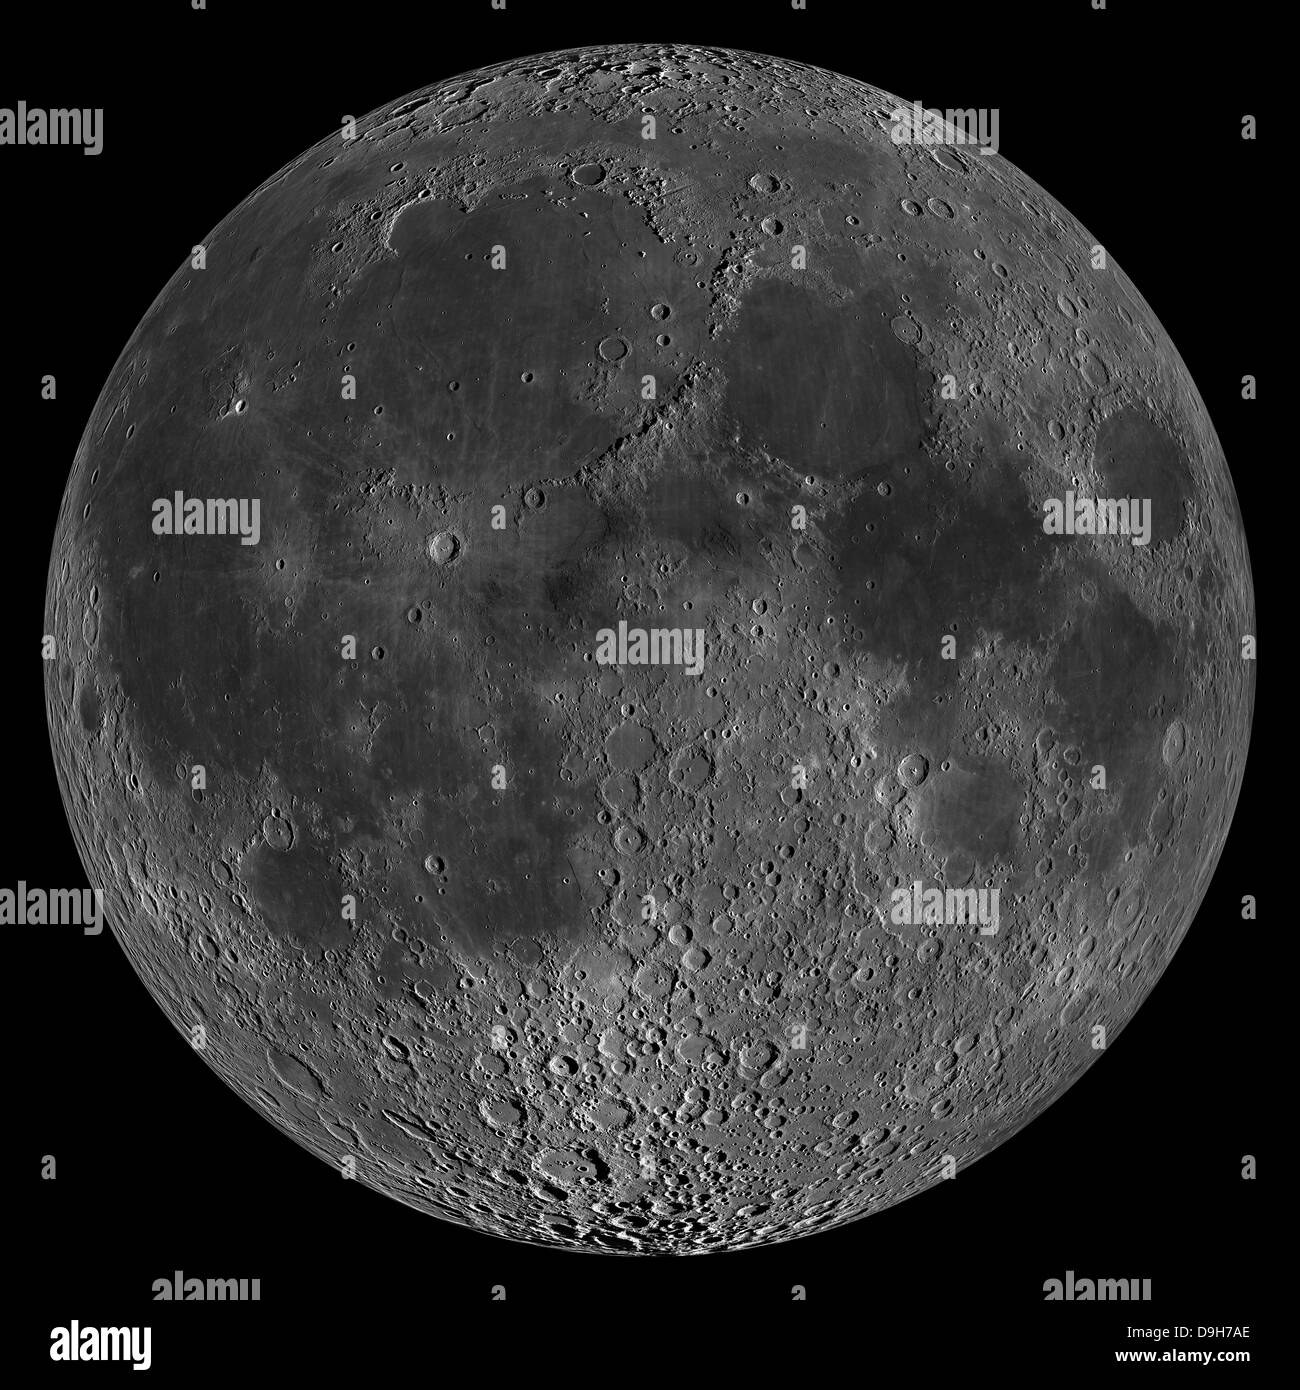 Mosaic of the lunar nearside. - Stock Image